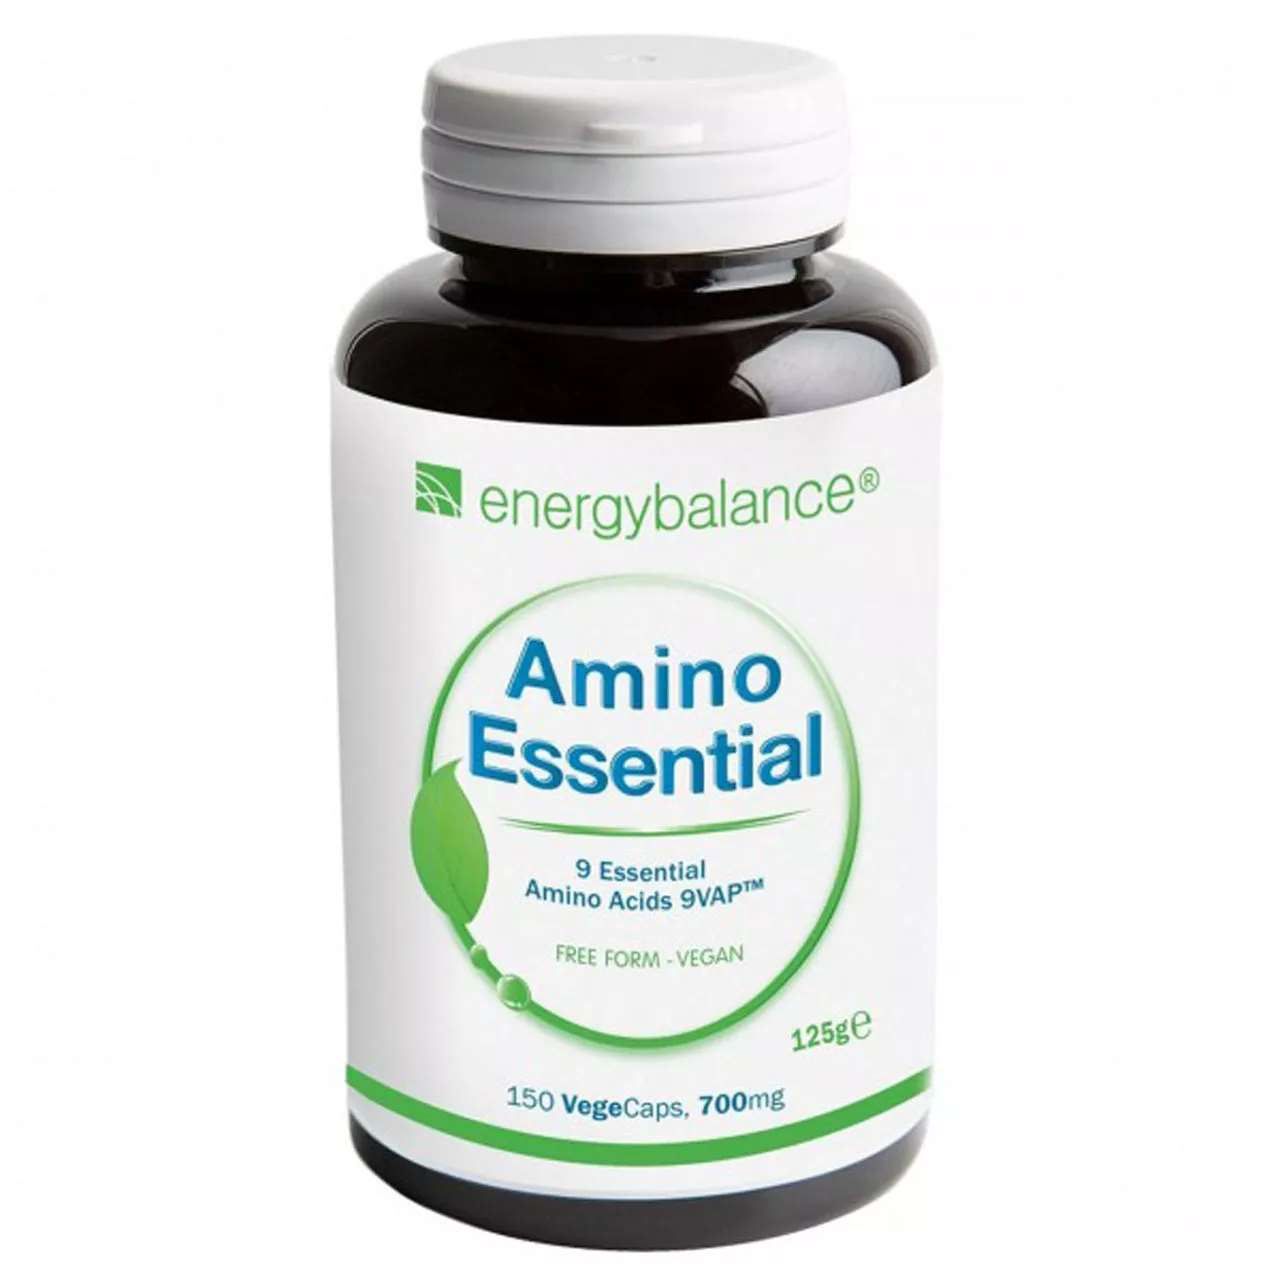 Amino Essential, 150 VegeCaps